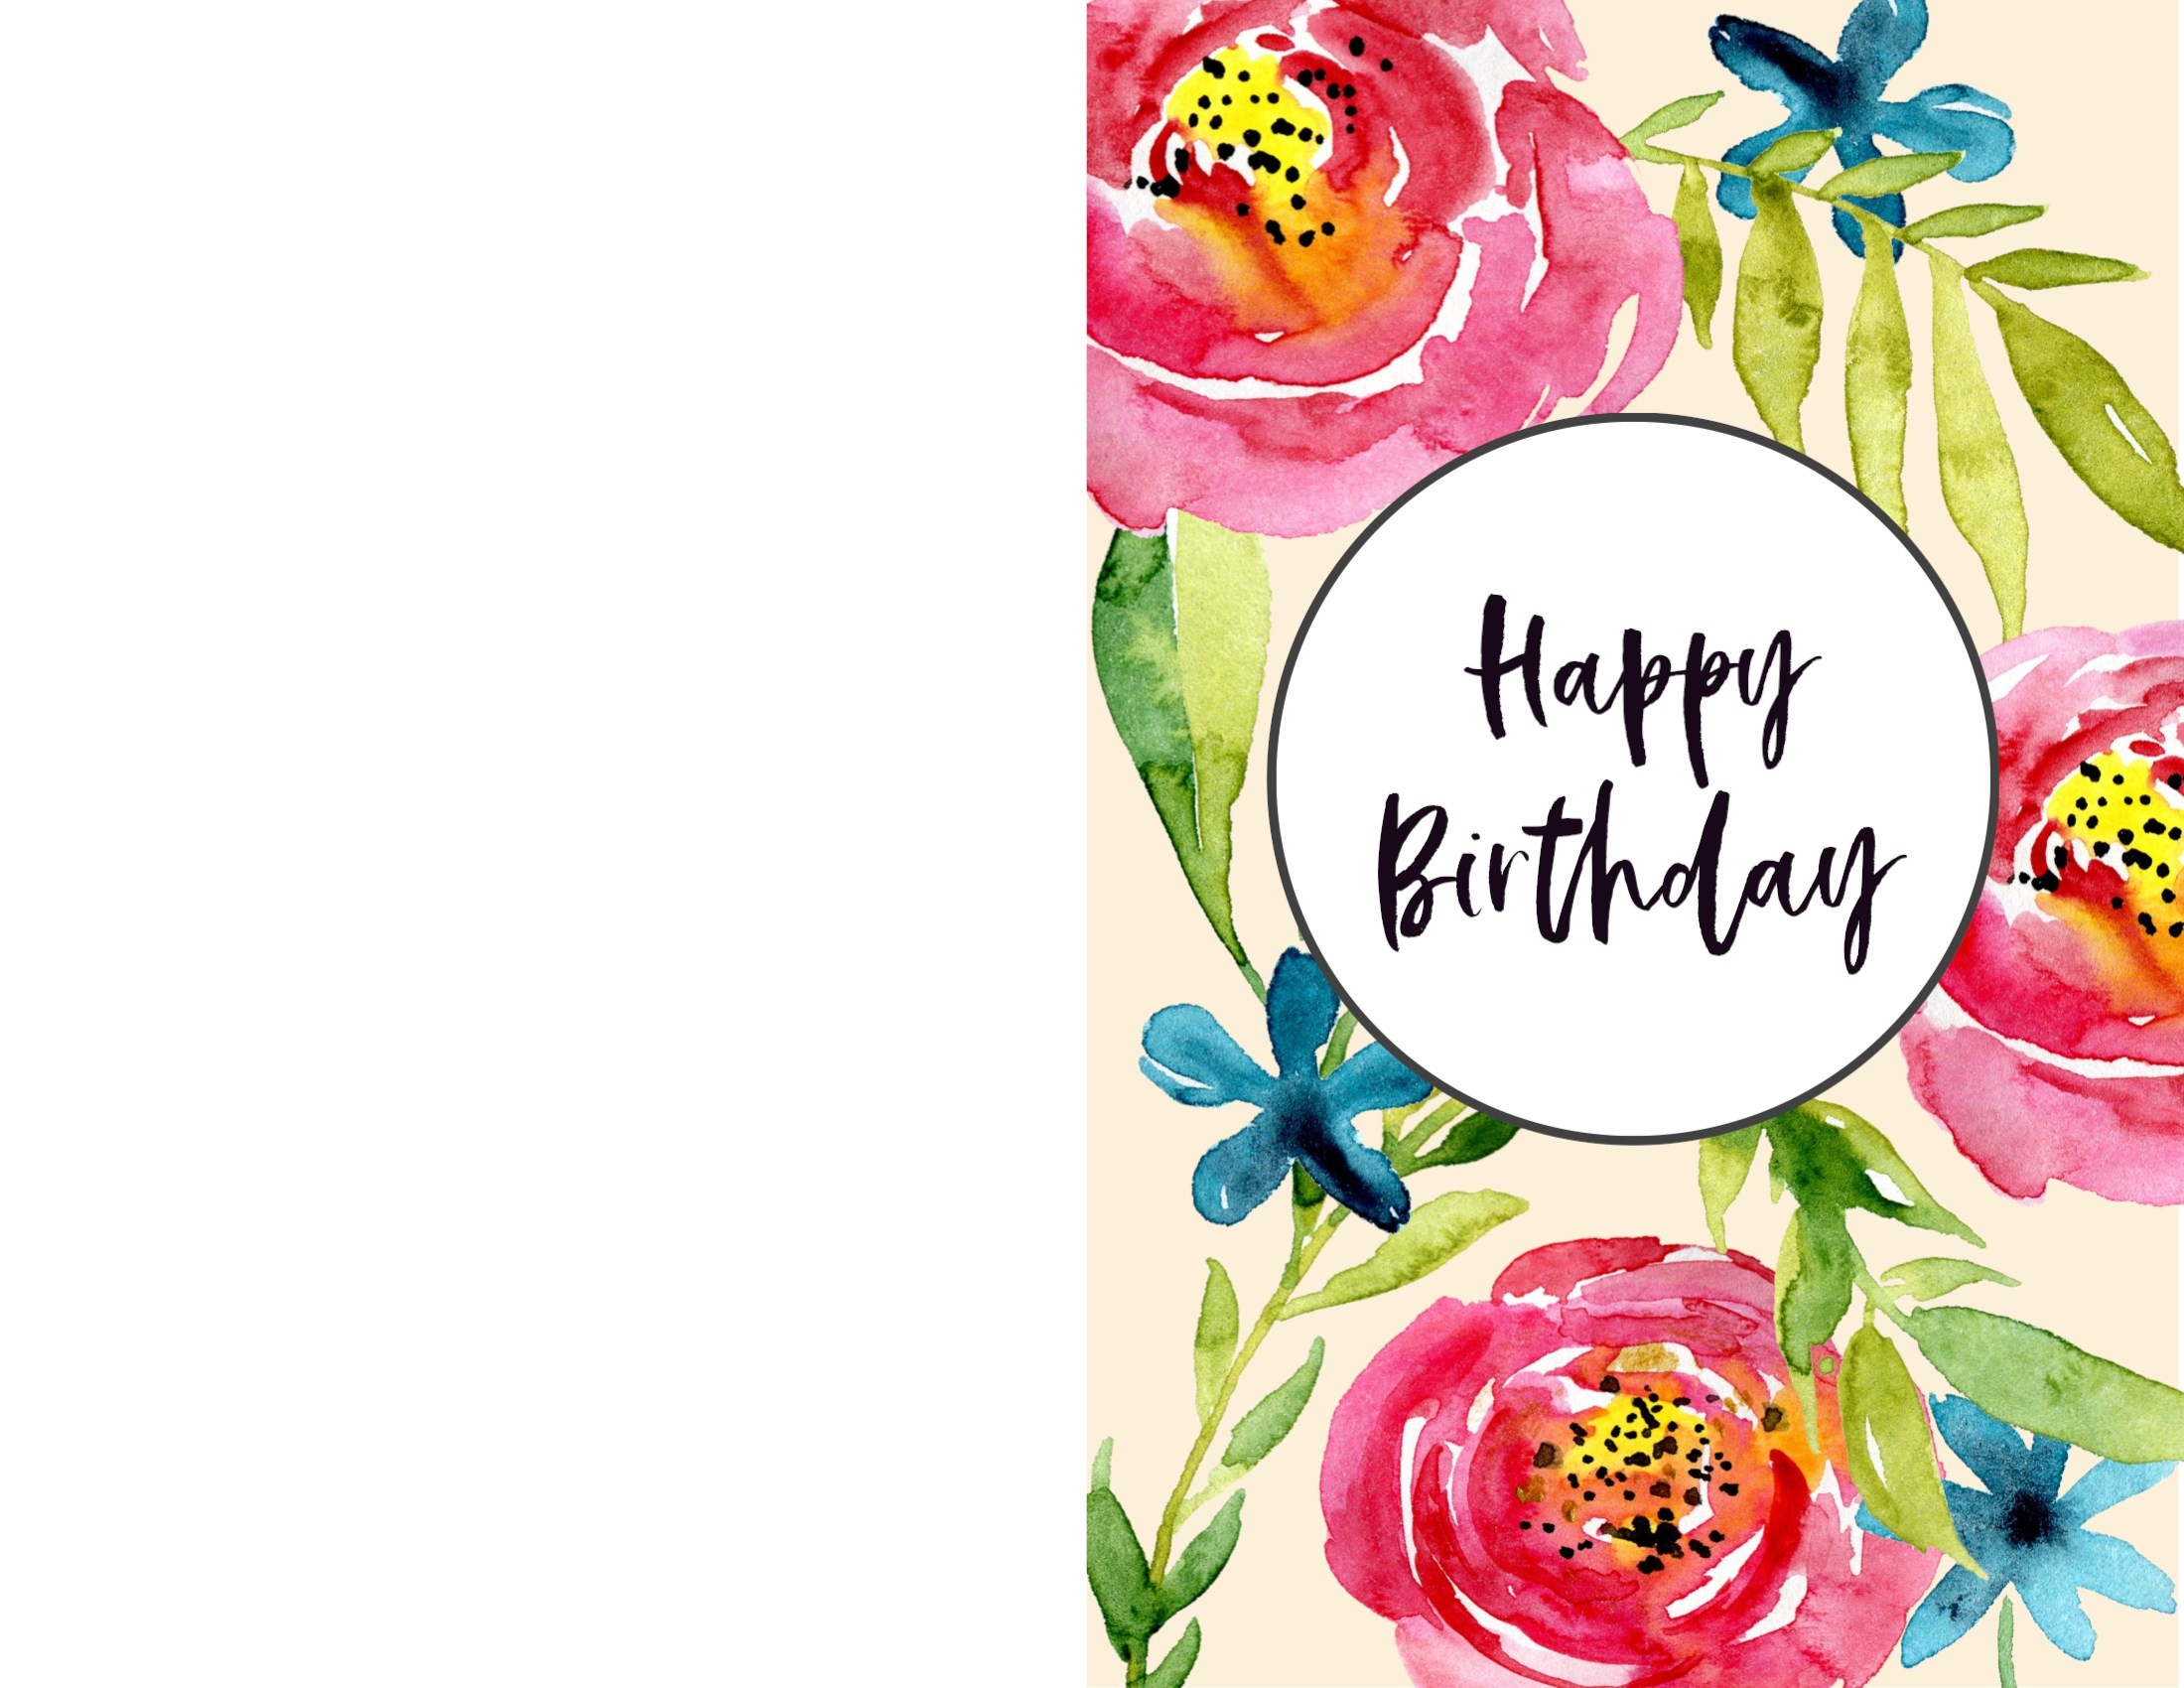 Free Printable Birthday Cards - Paper Trail Design - Free Printable Birthday Cards For Wife